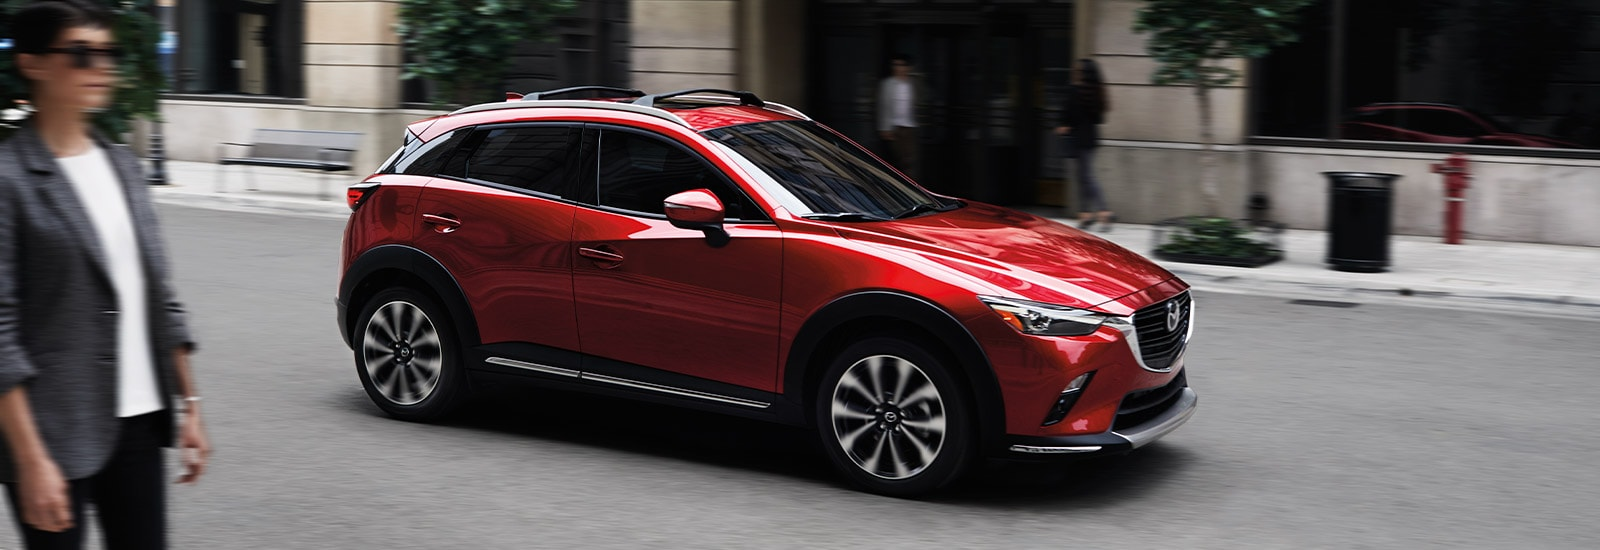 Mazda Dealership Near Me >> 2019 Mazda Cx 3 Suv Chapman Mazda Nj Mazda Dealership Near Me